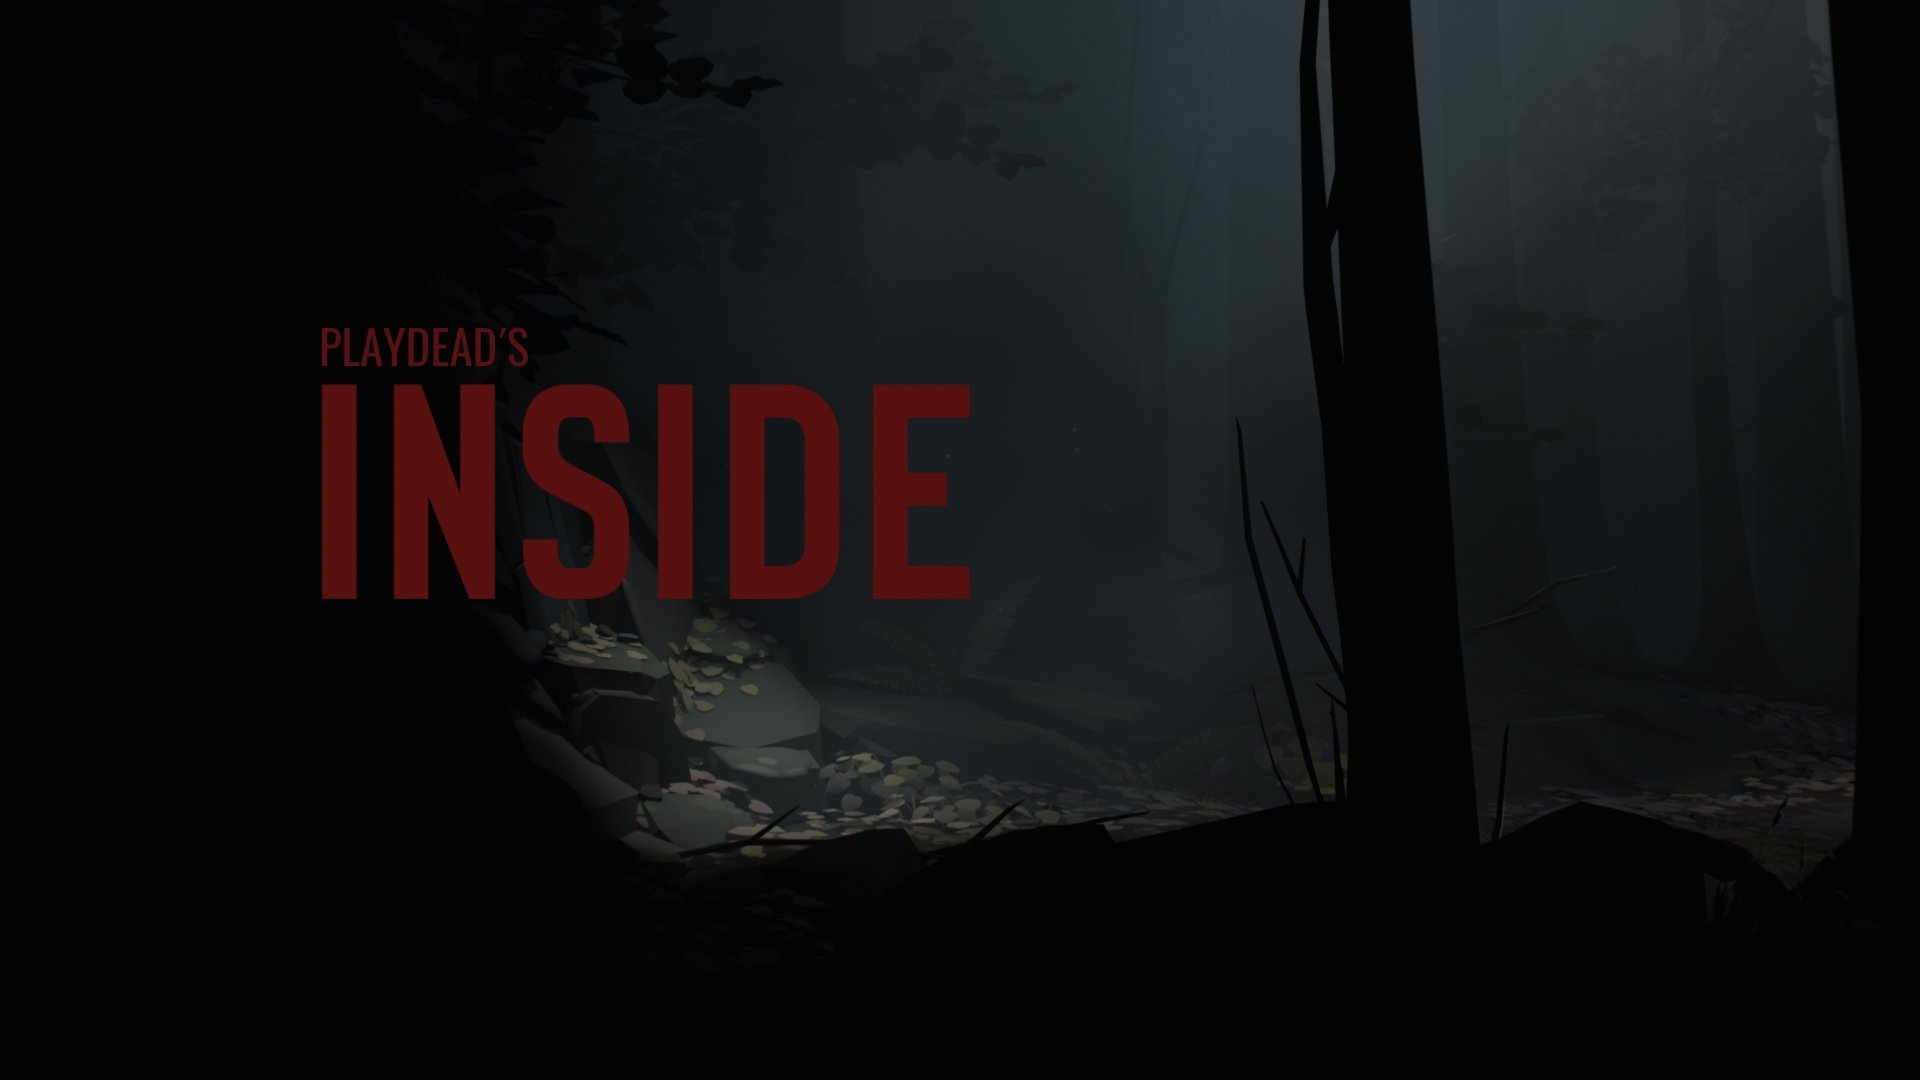 8 Inside HD Wallpapers Background Images 1920x1080